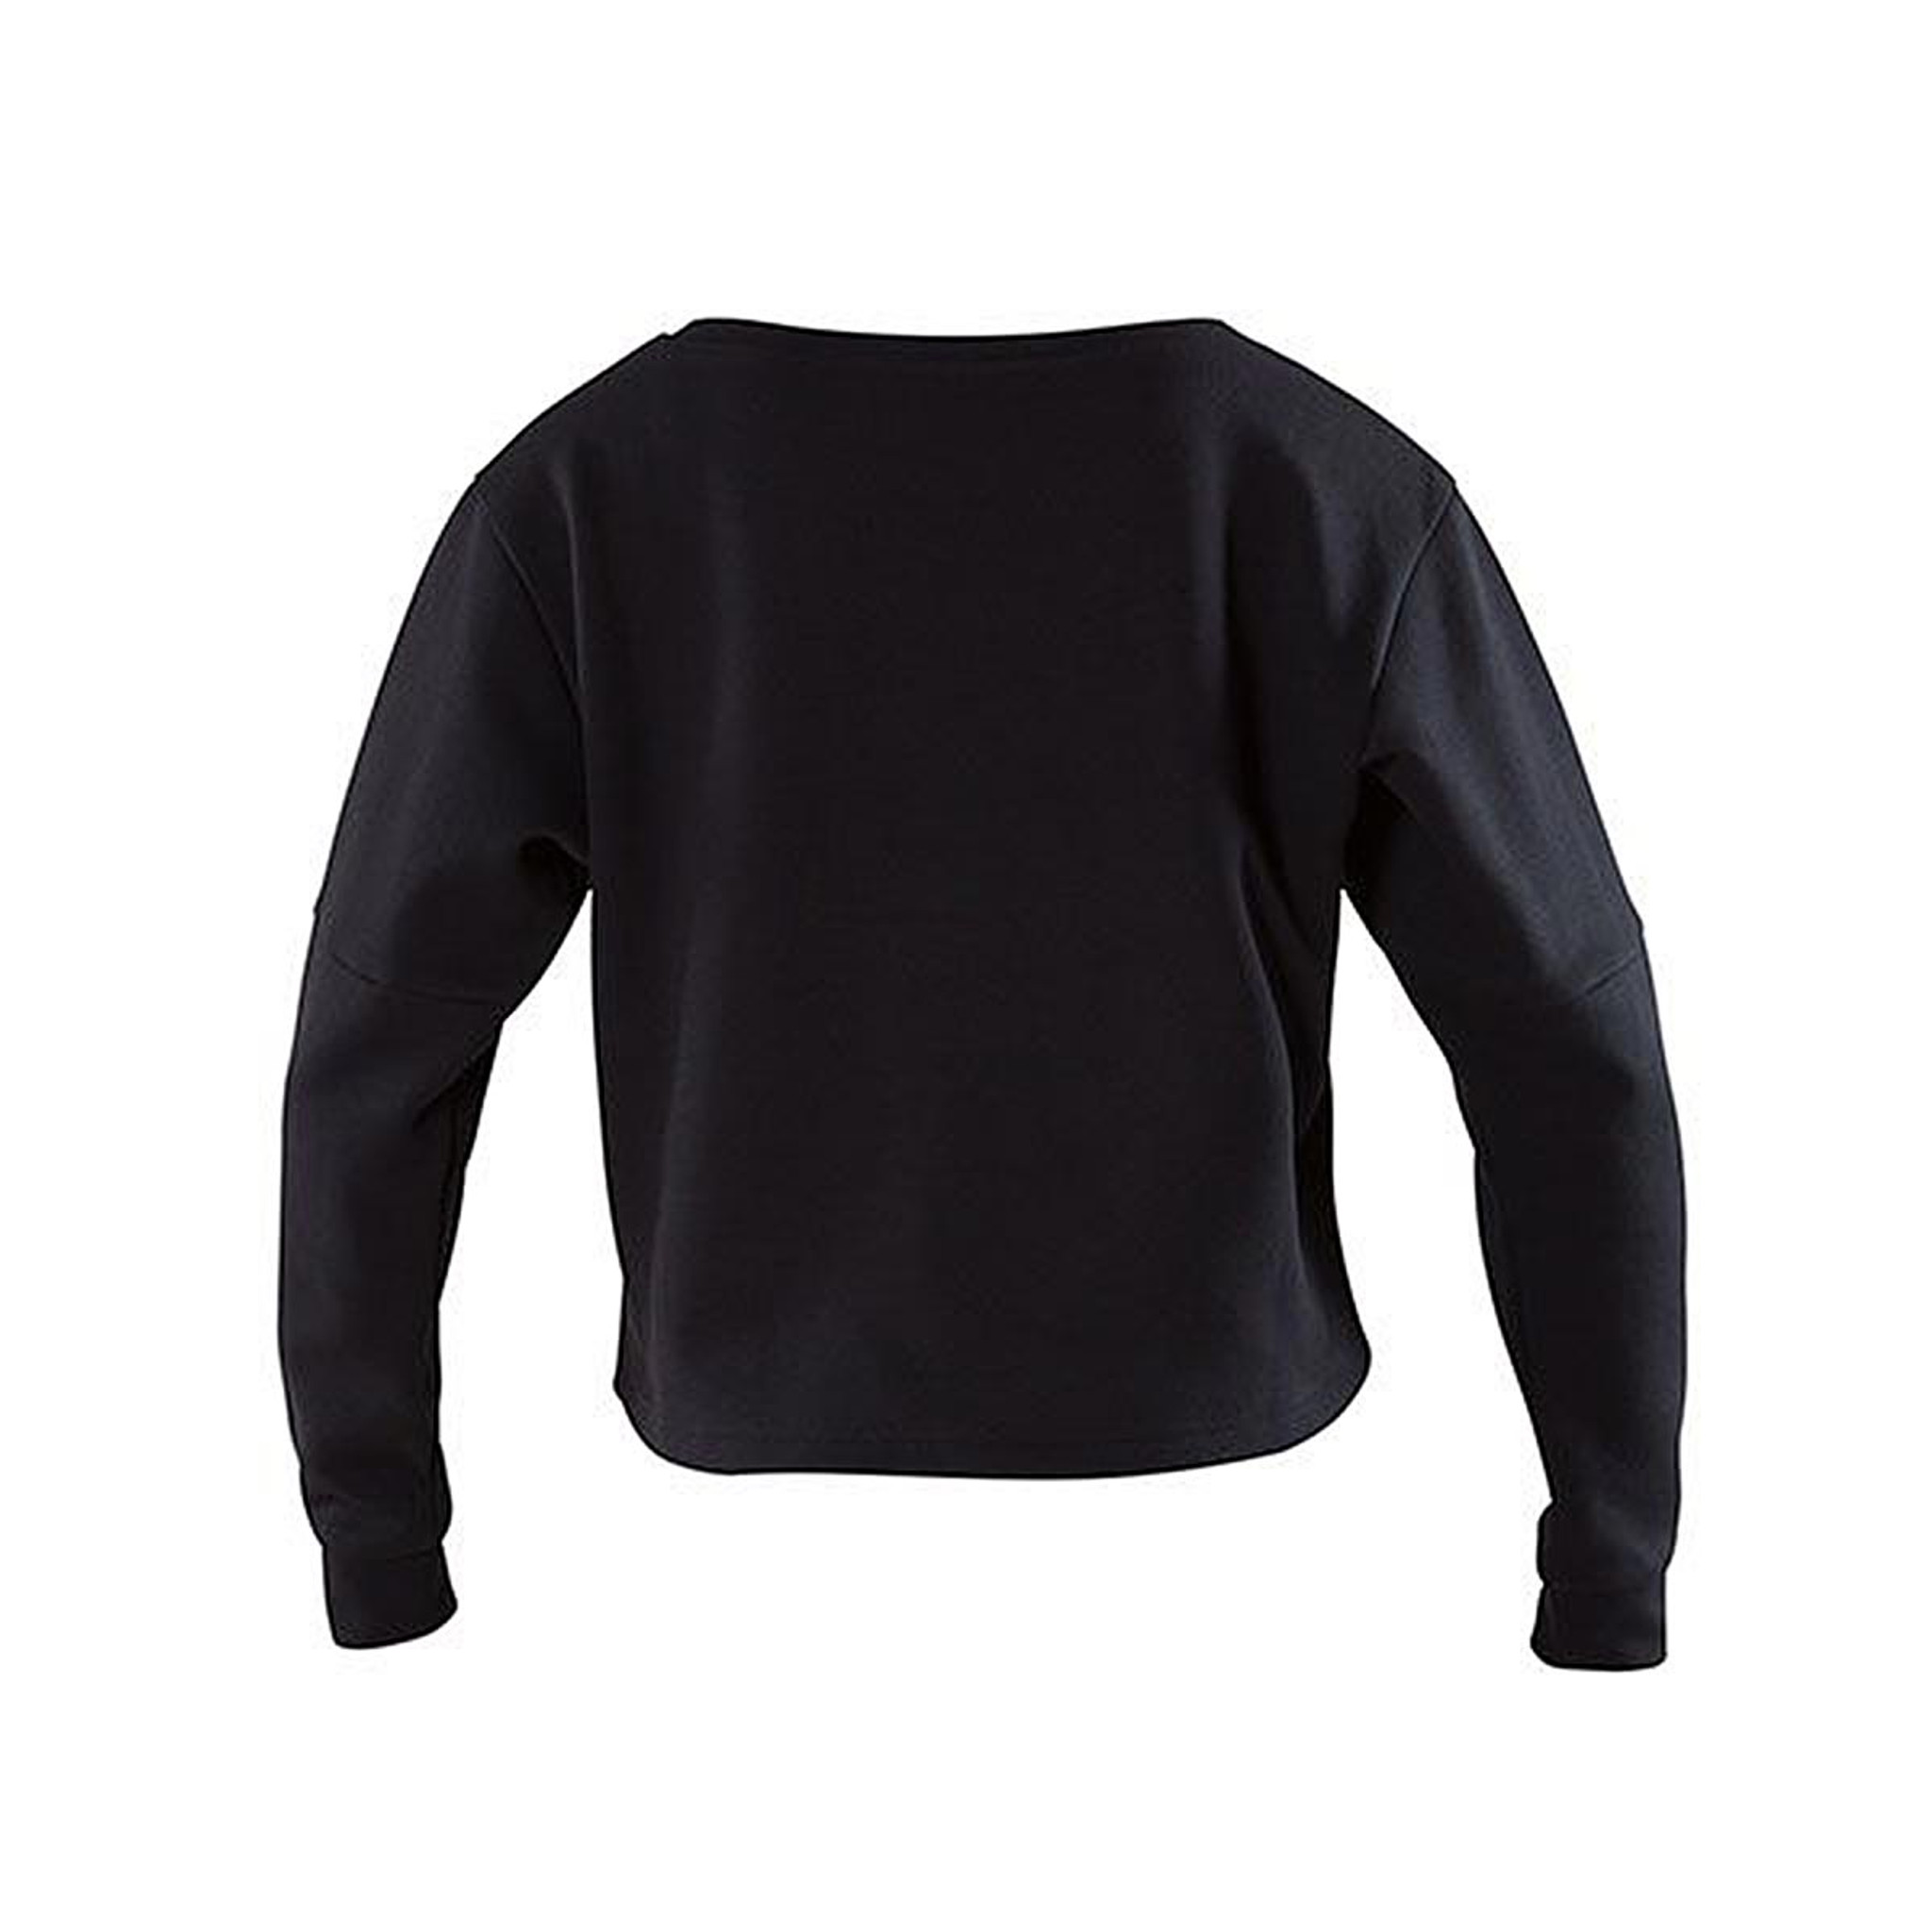 Energetiks Brooklyn Cropped Sweater  Adult's